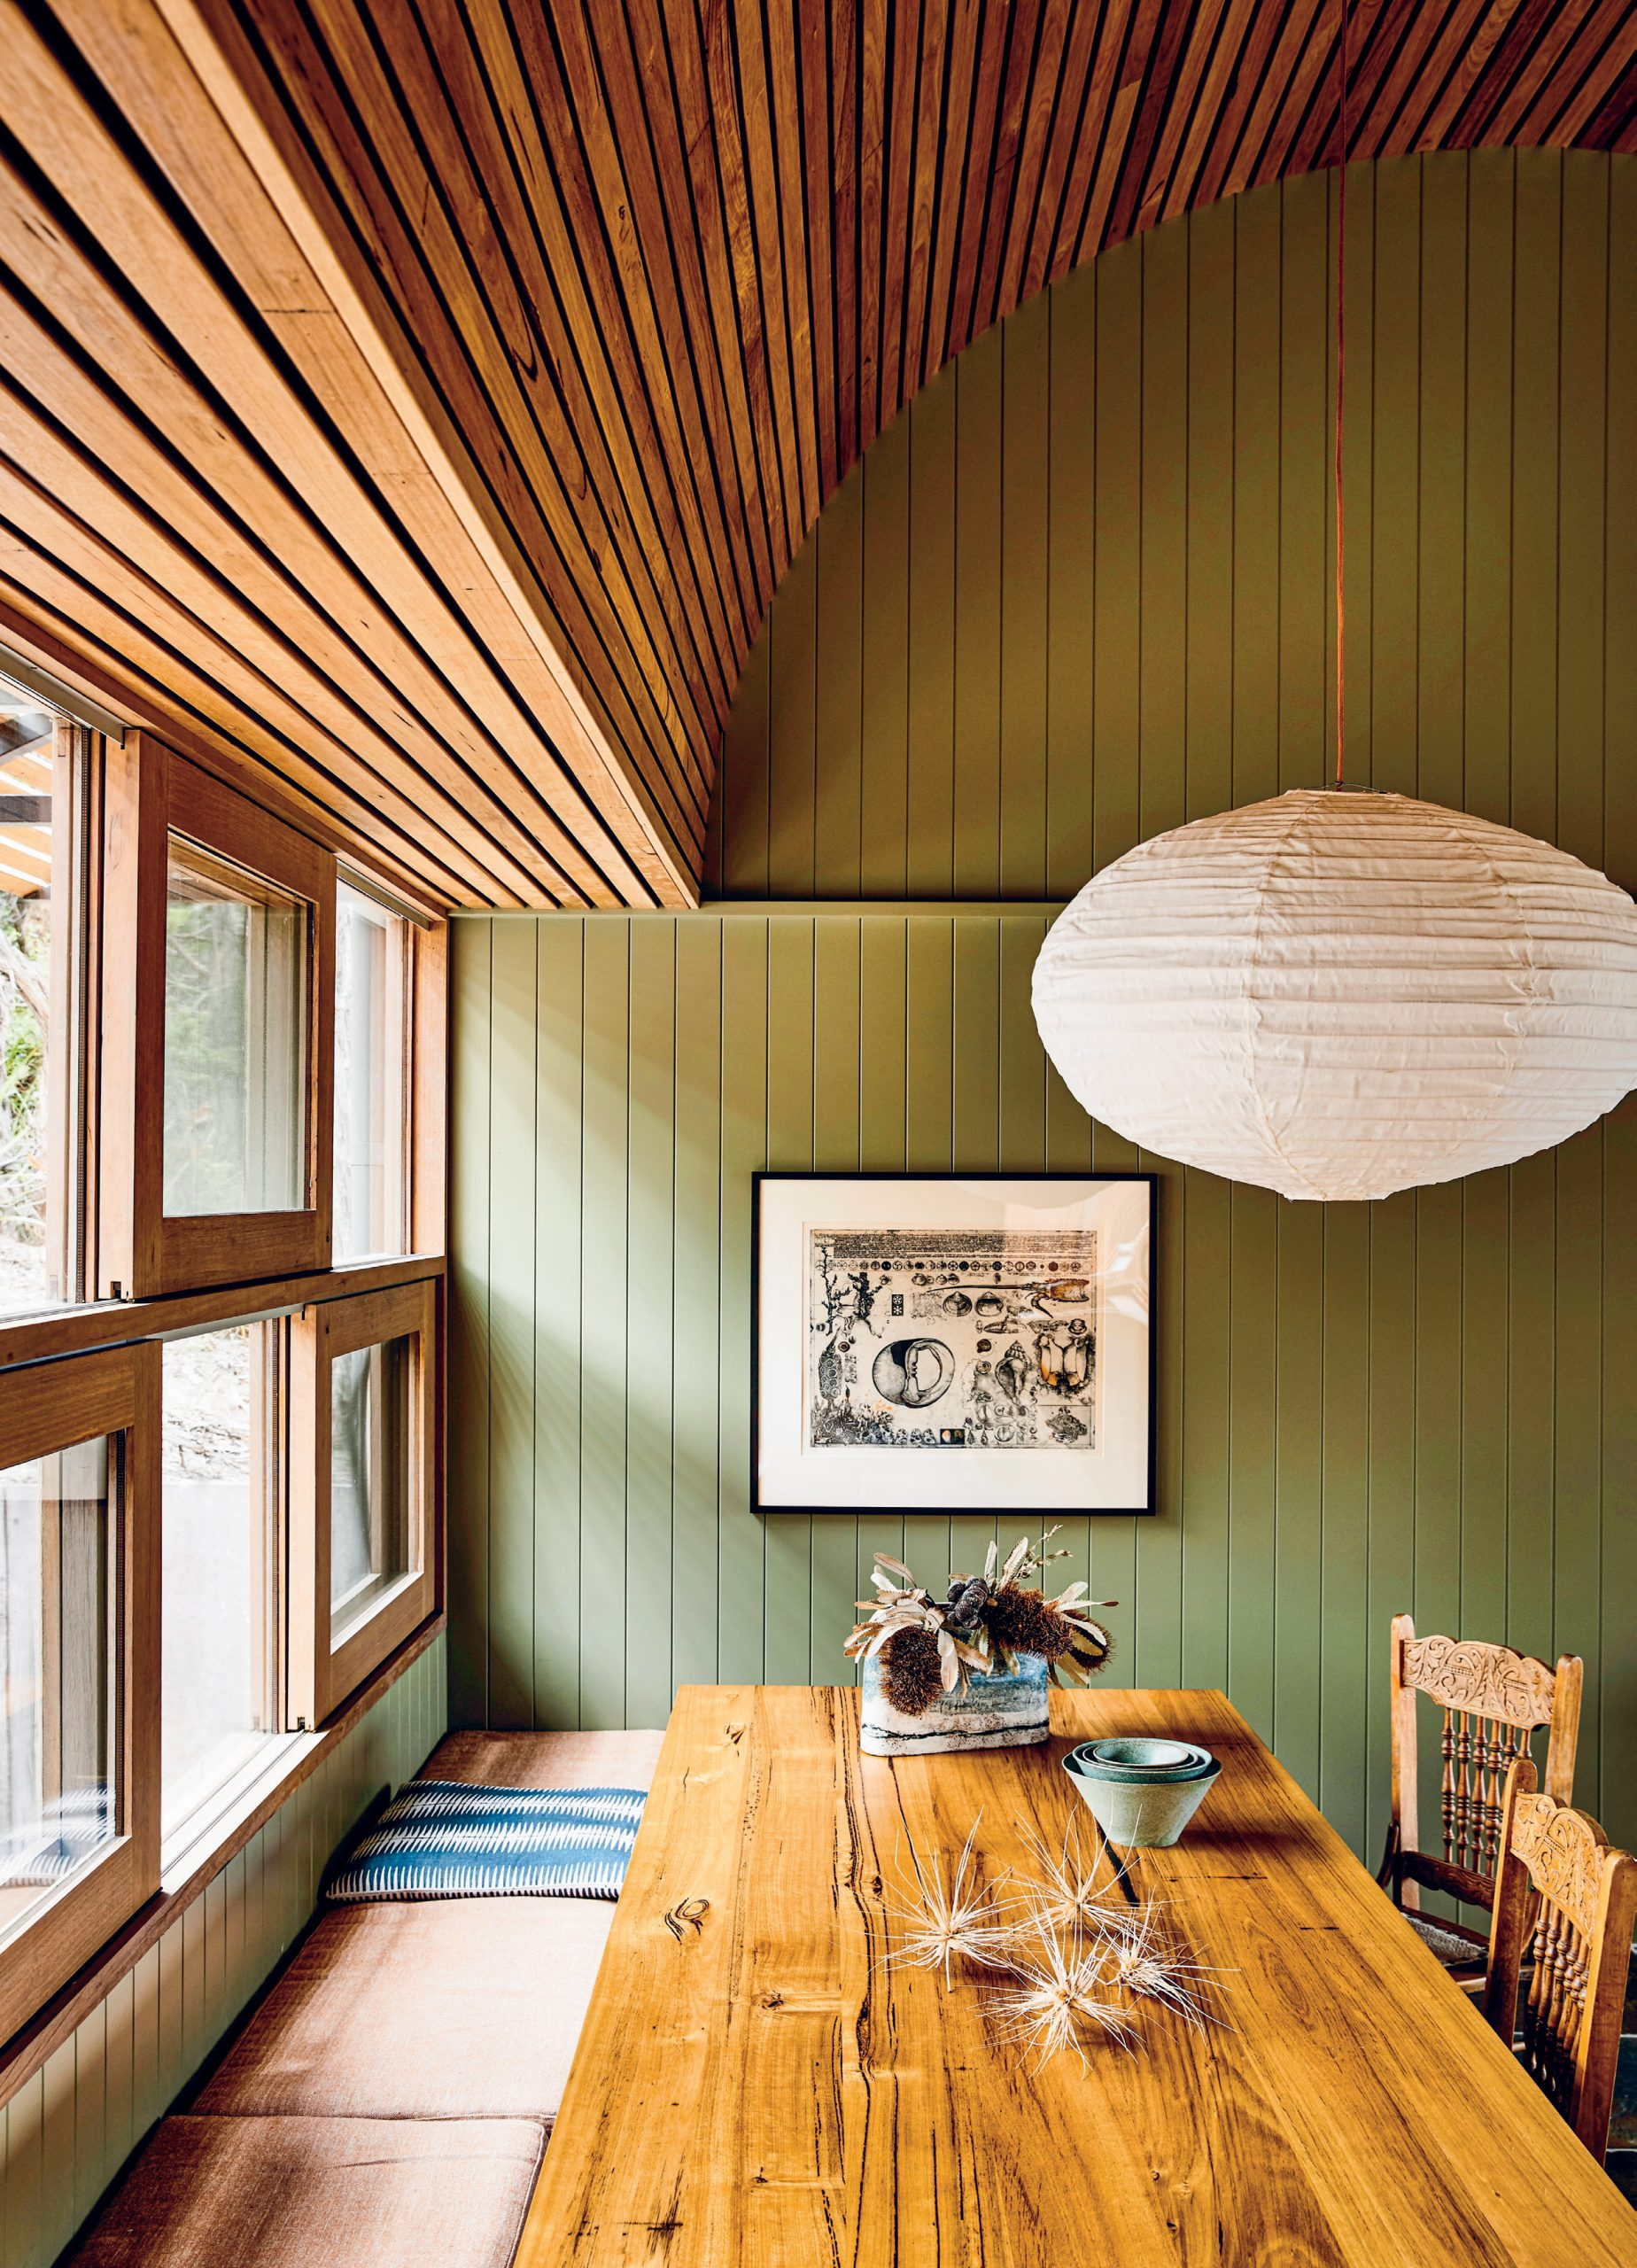 The space has been designed to fit multiple generations, and the large Mark Tuckey dining table provides ample seating for whoever is staying. An artwork by Jörg Schmeisser creates visual contrast against the green.